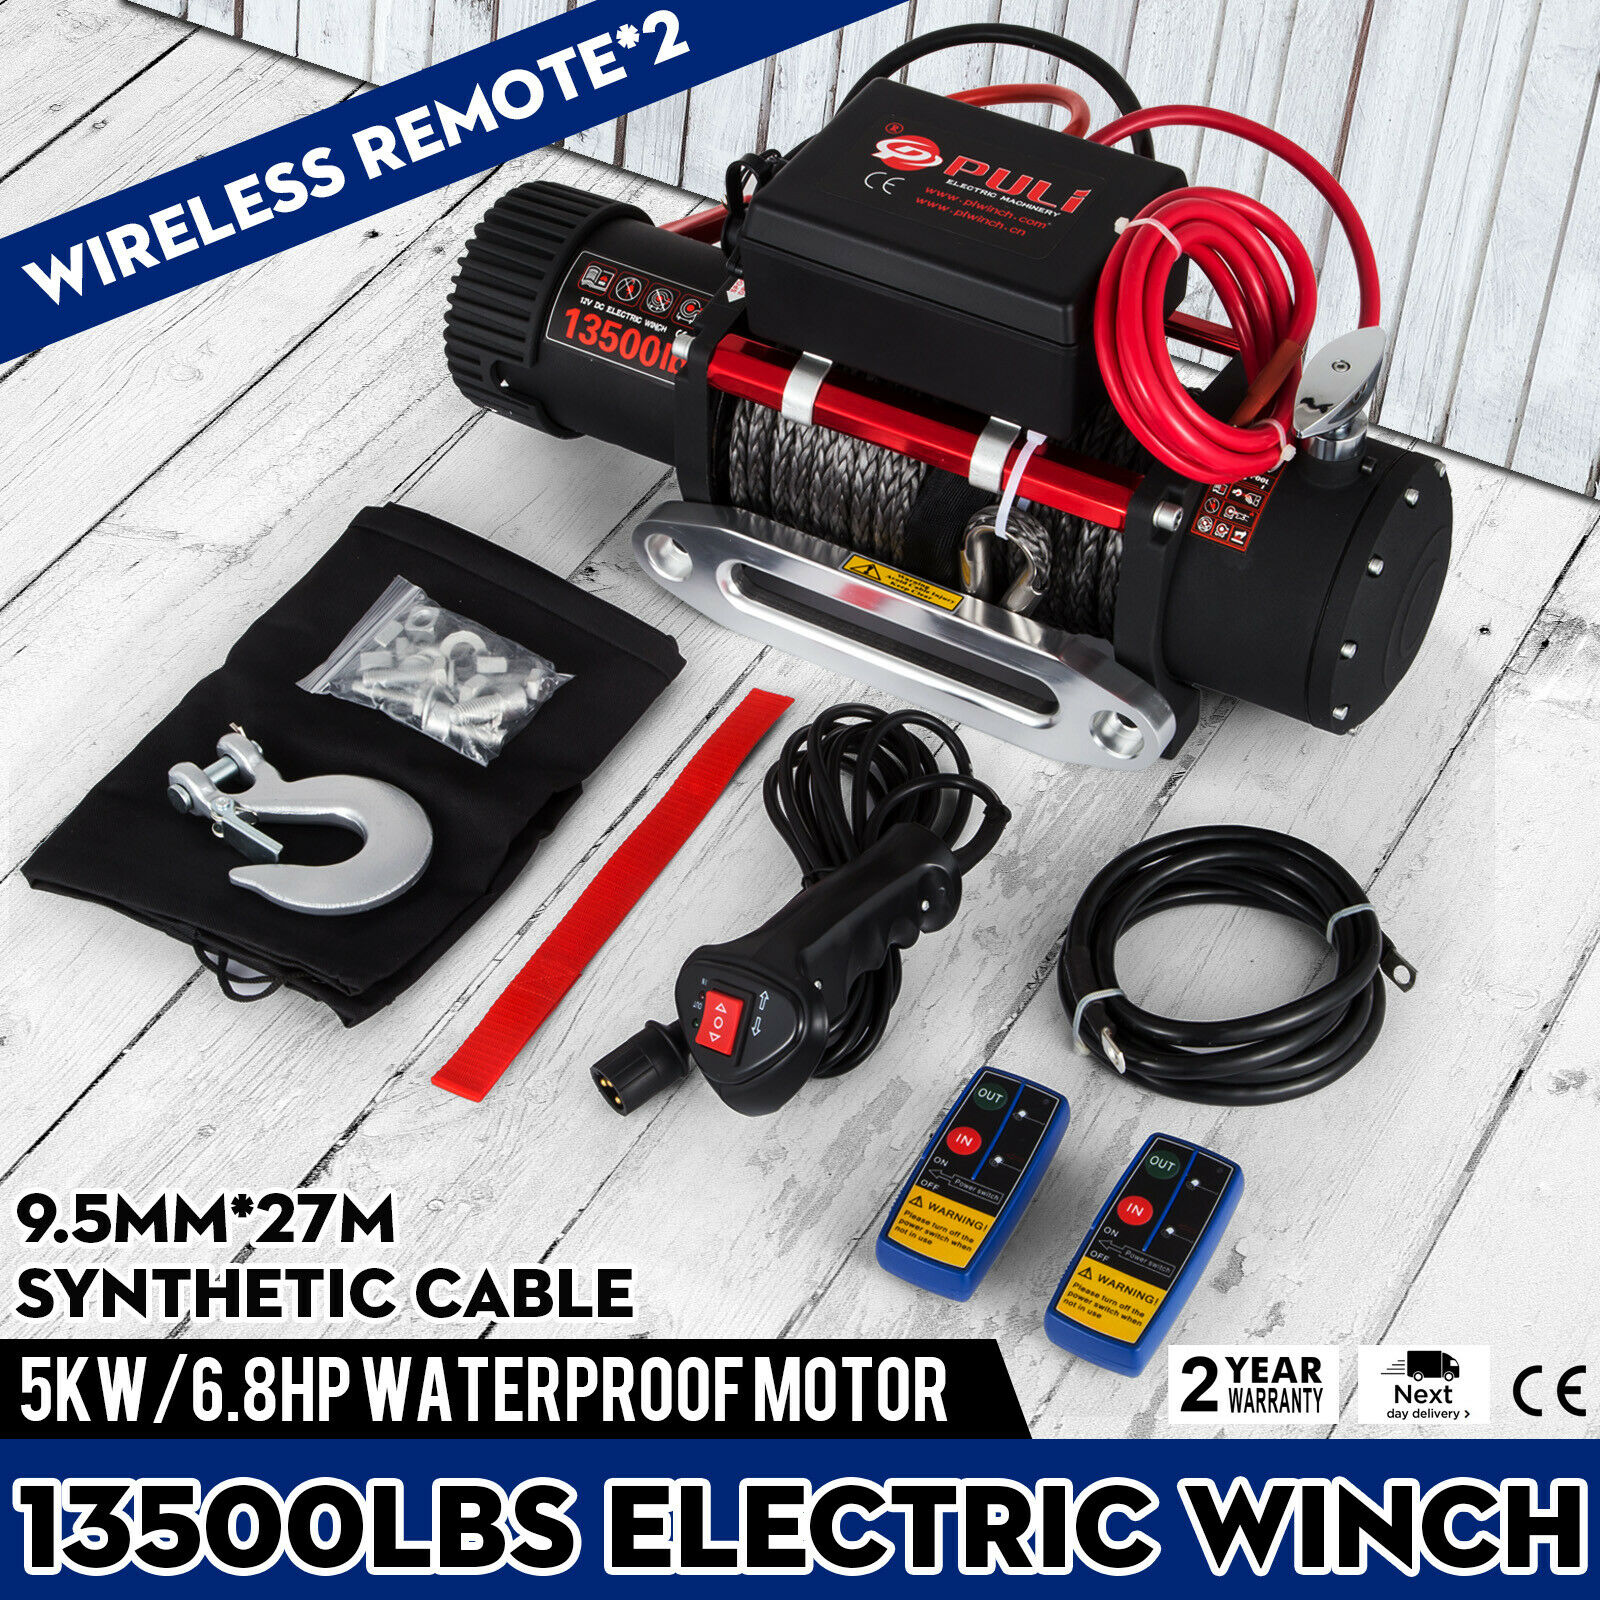 13500lb Electric Winch 12V Synthetic Rope Winchmax 4x4 / Recovery Wireless 93ft Winch